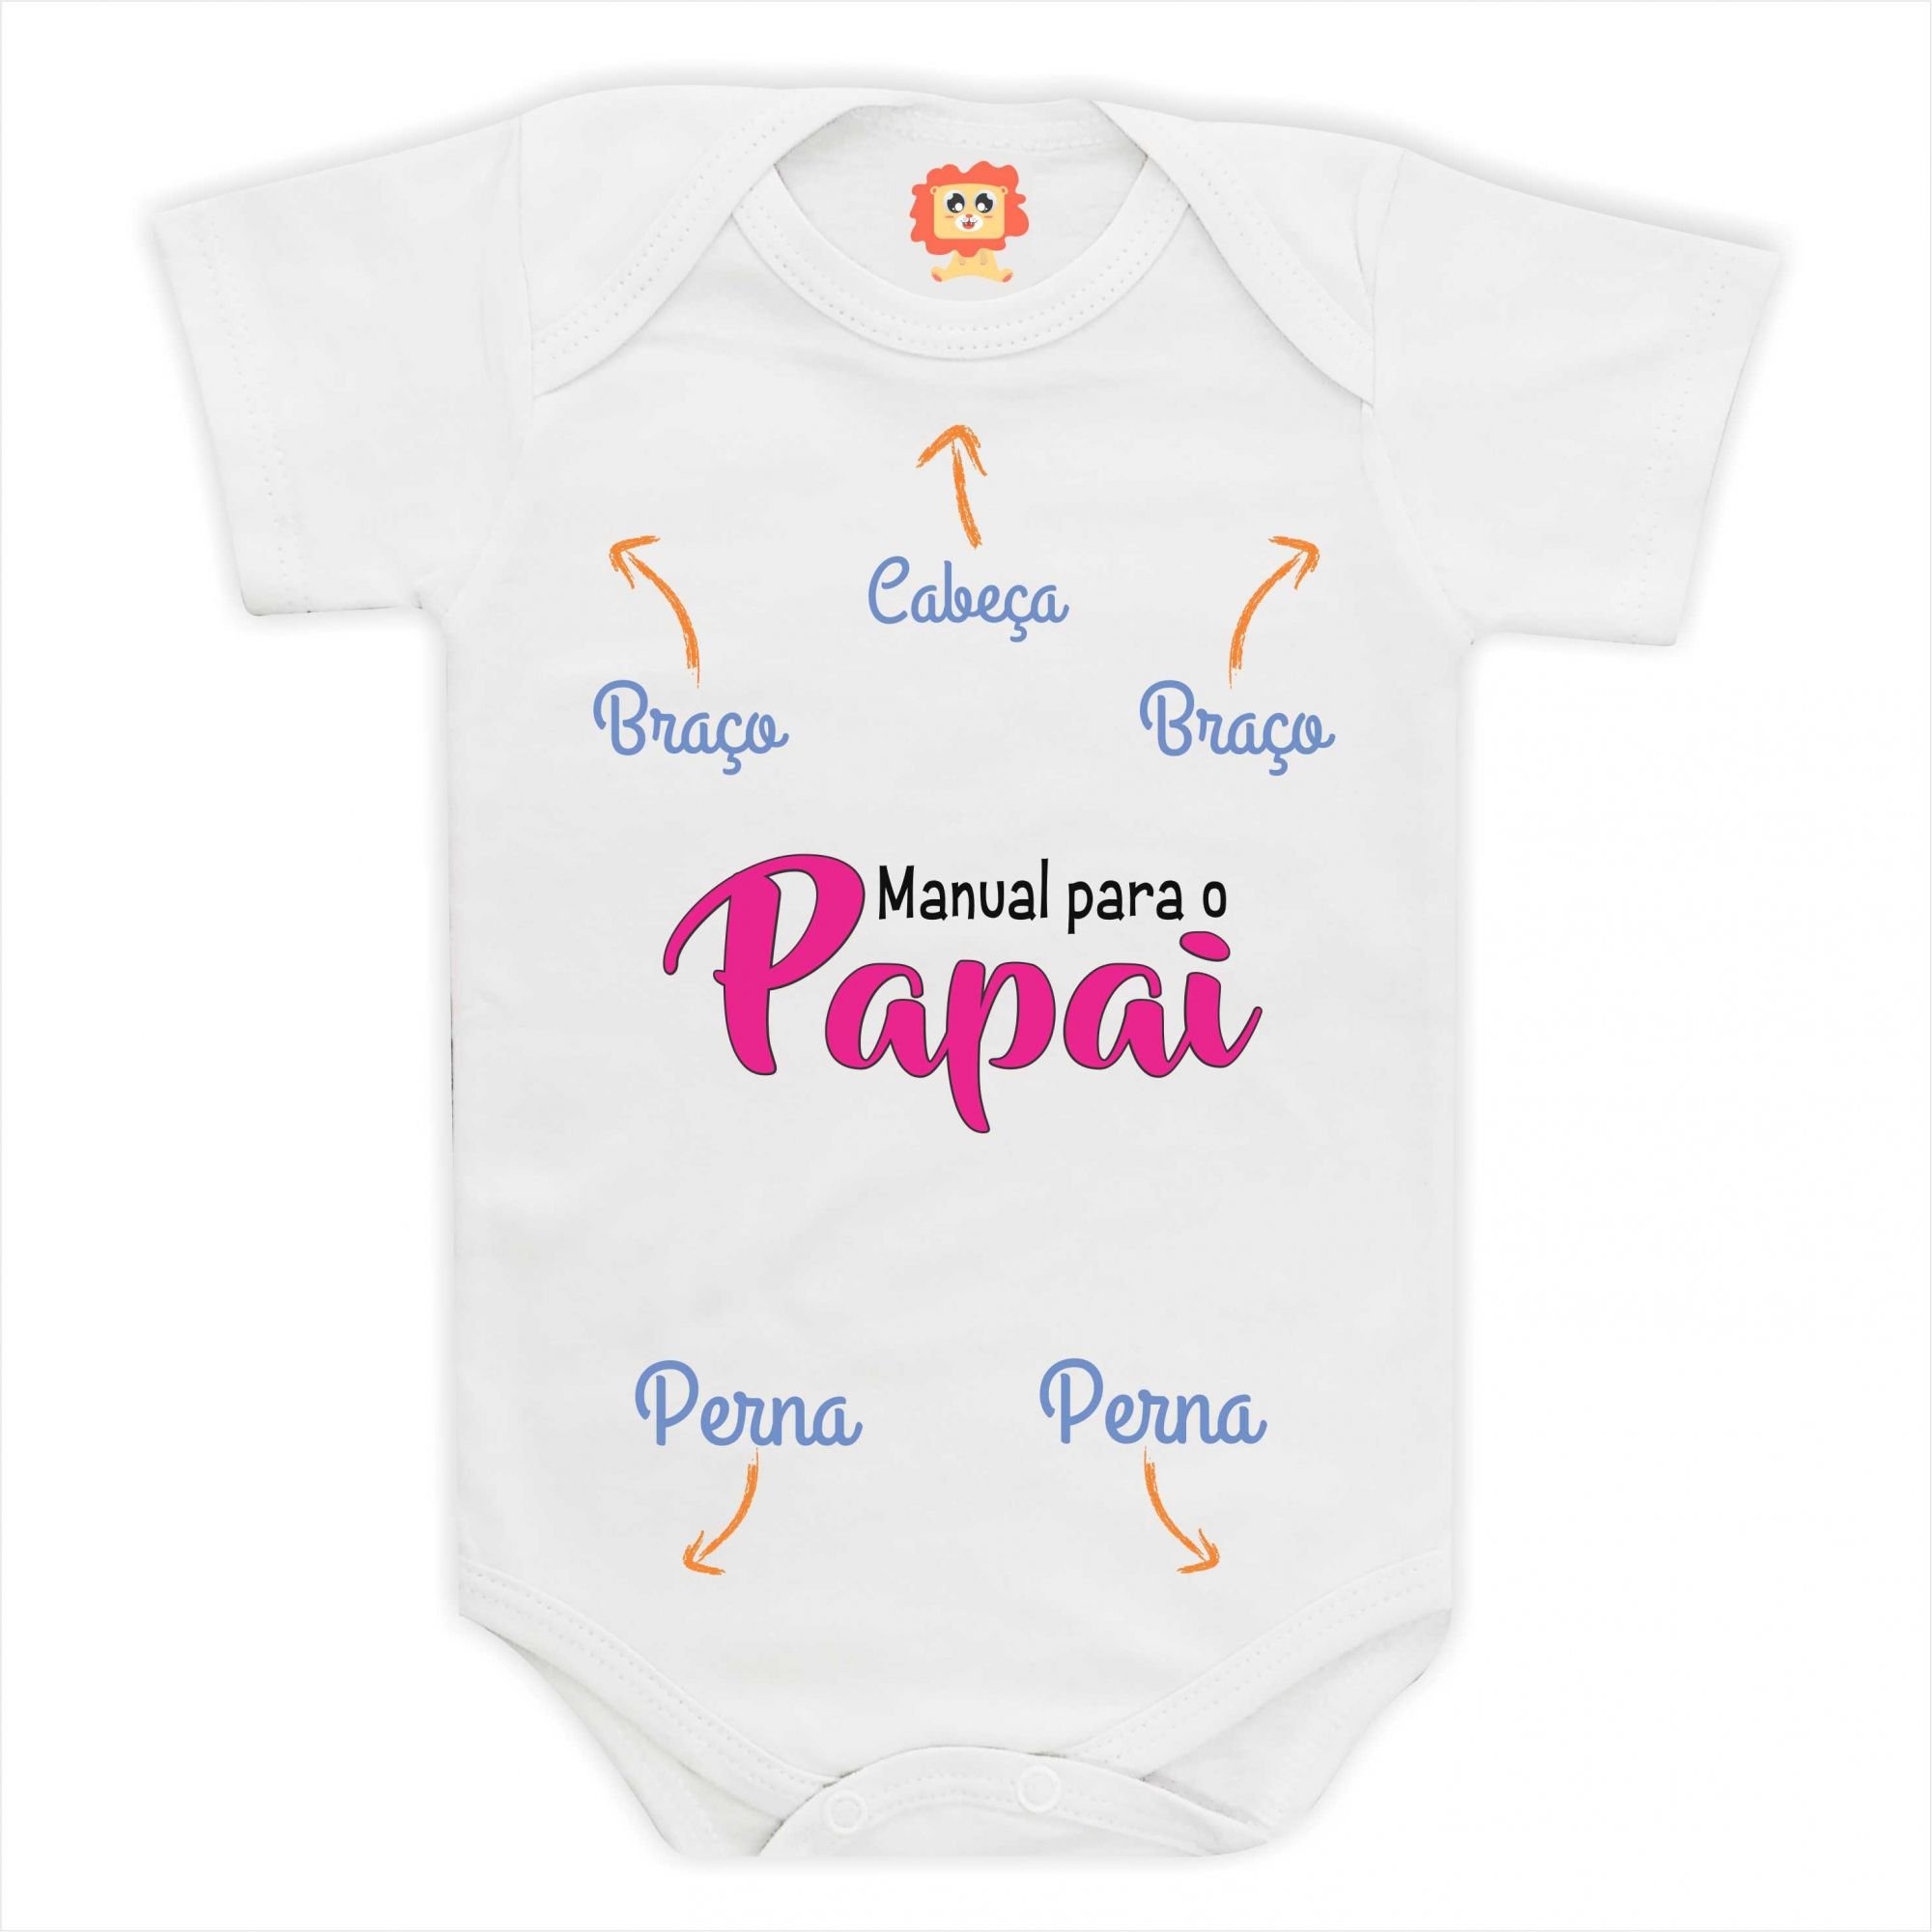 Body de Bebê ou Camiseta Manual para o Papai